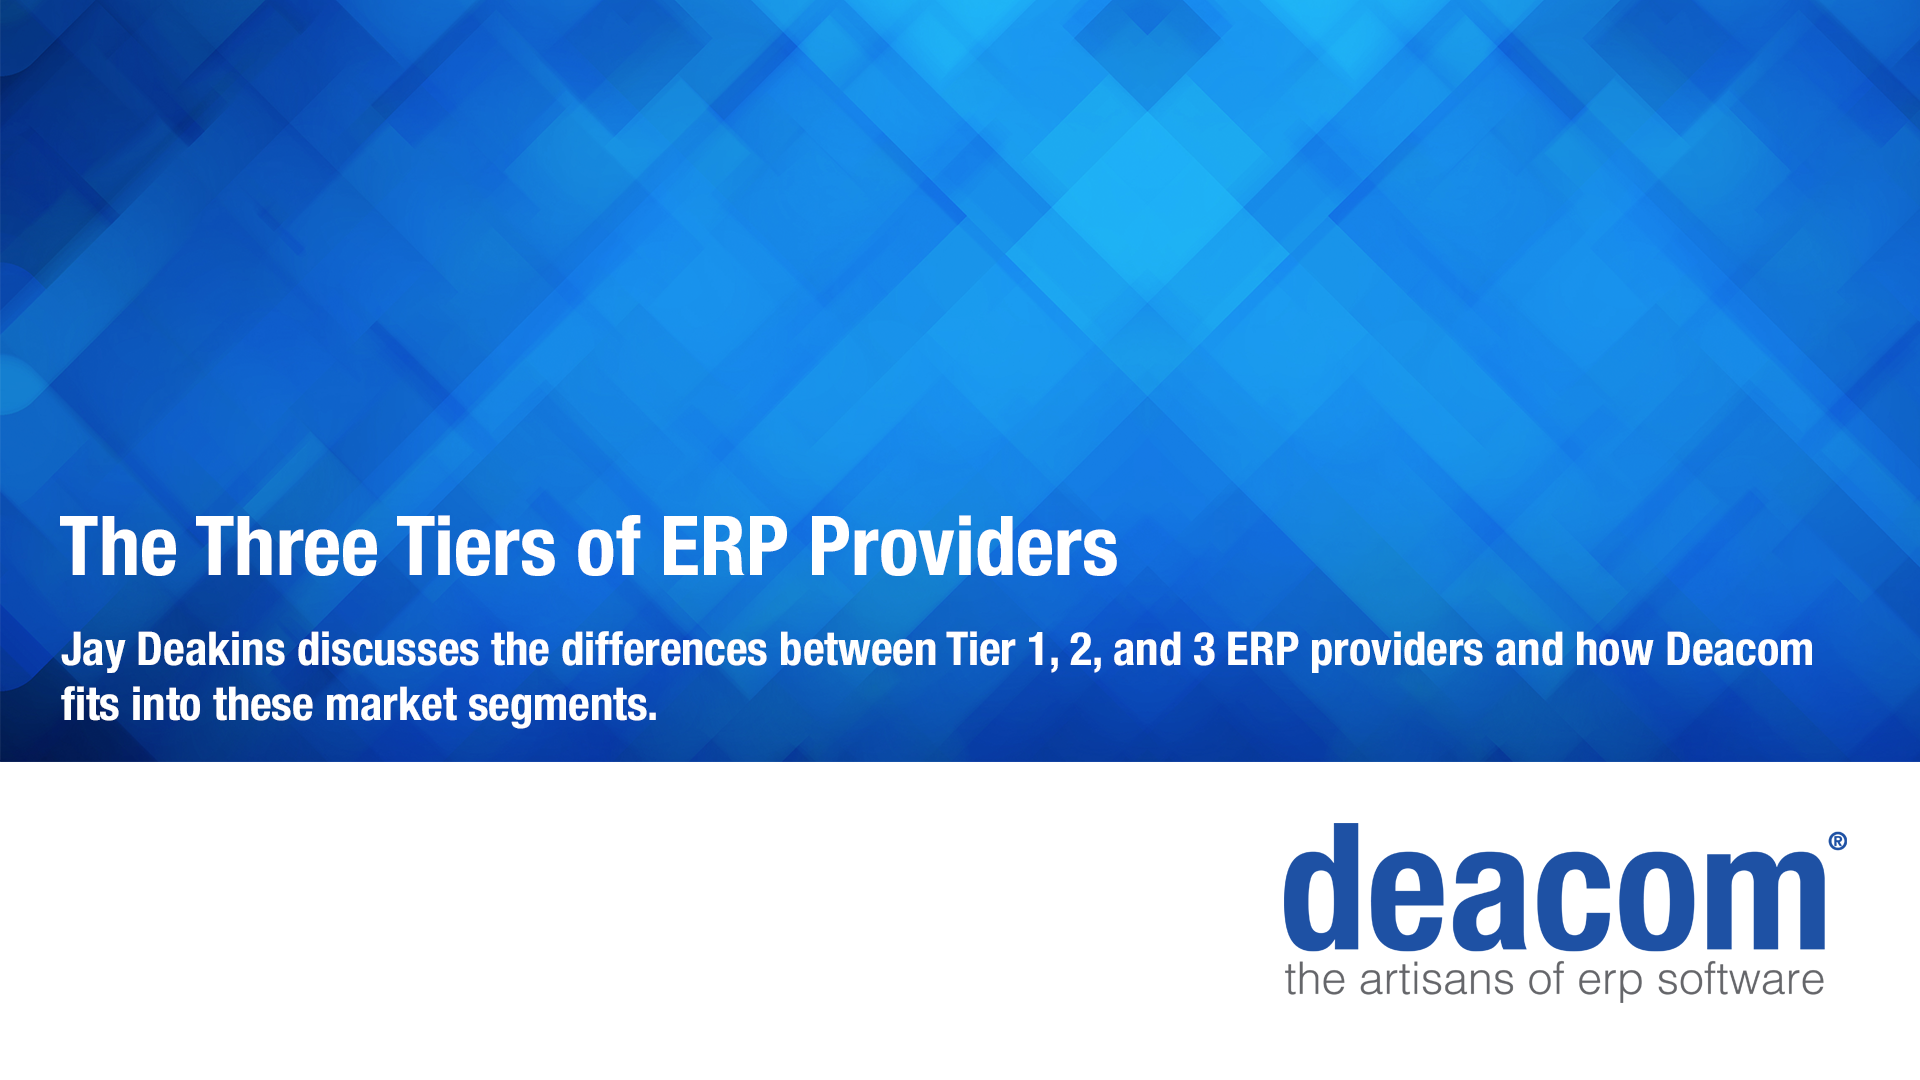 Deacom and the Three Tiers of ERP Providers